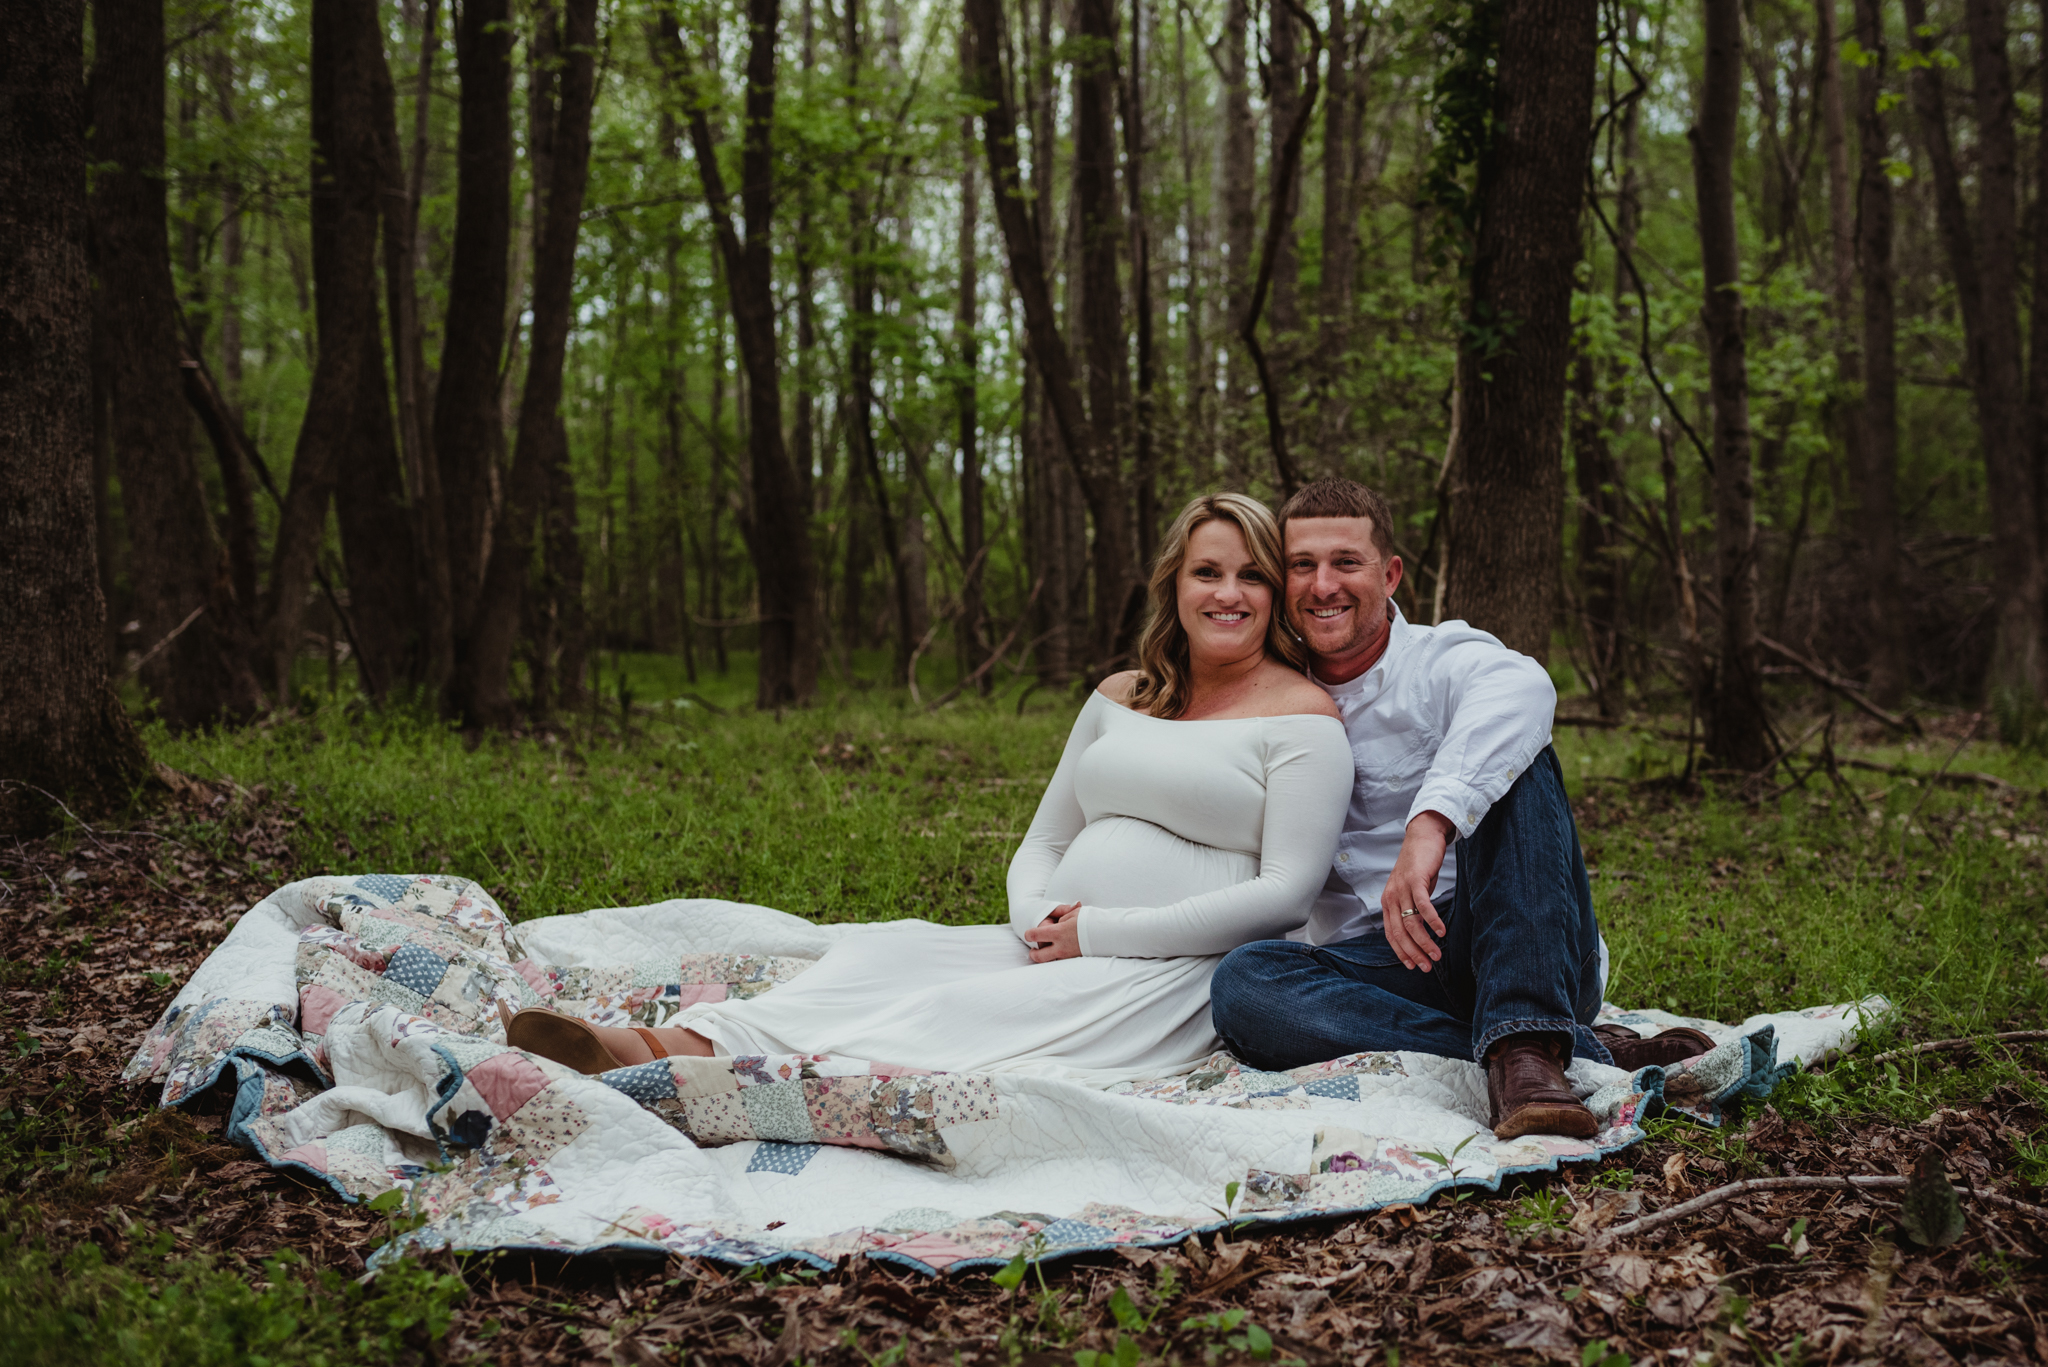 The soon to be parents cozy up on the blanket in the woods at sunset in Rolesville, NC for Rose Trail Images.